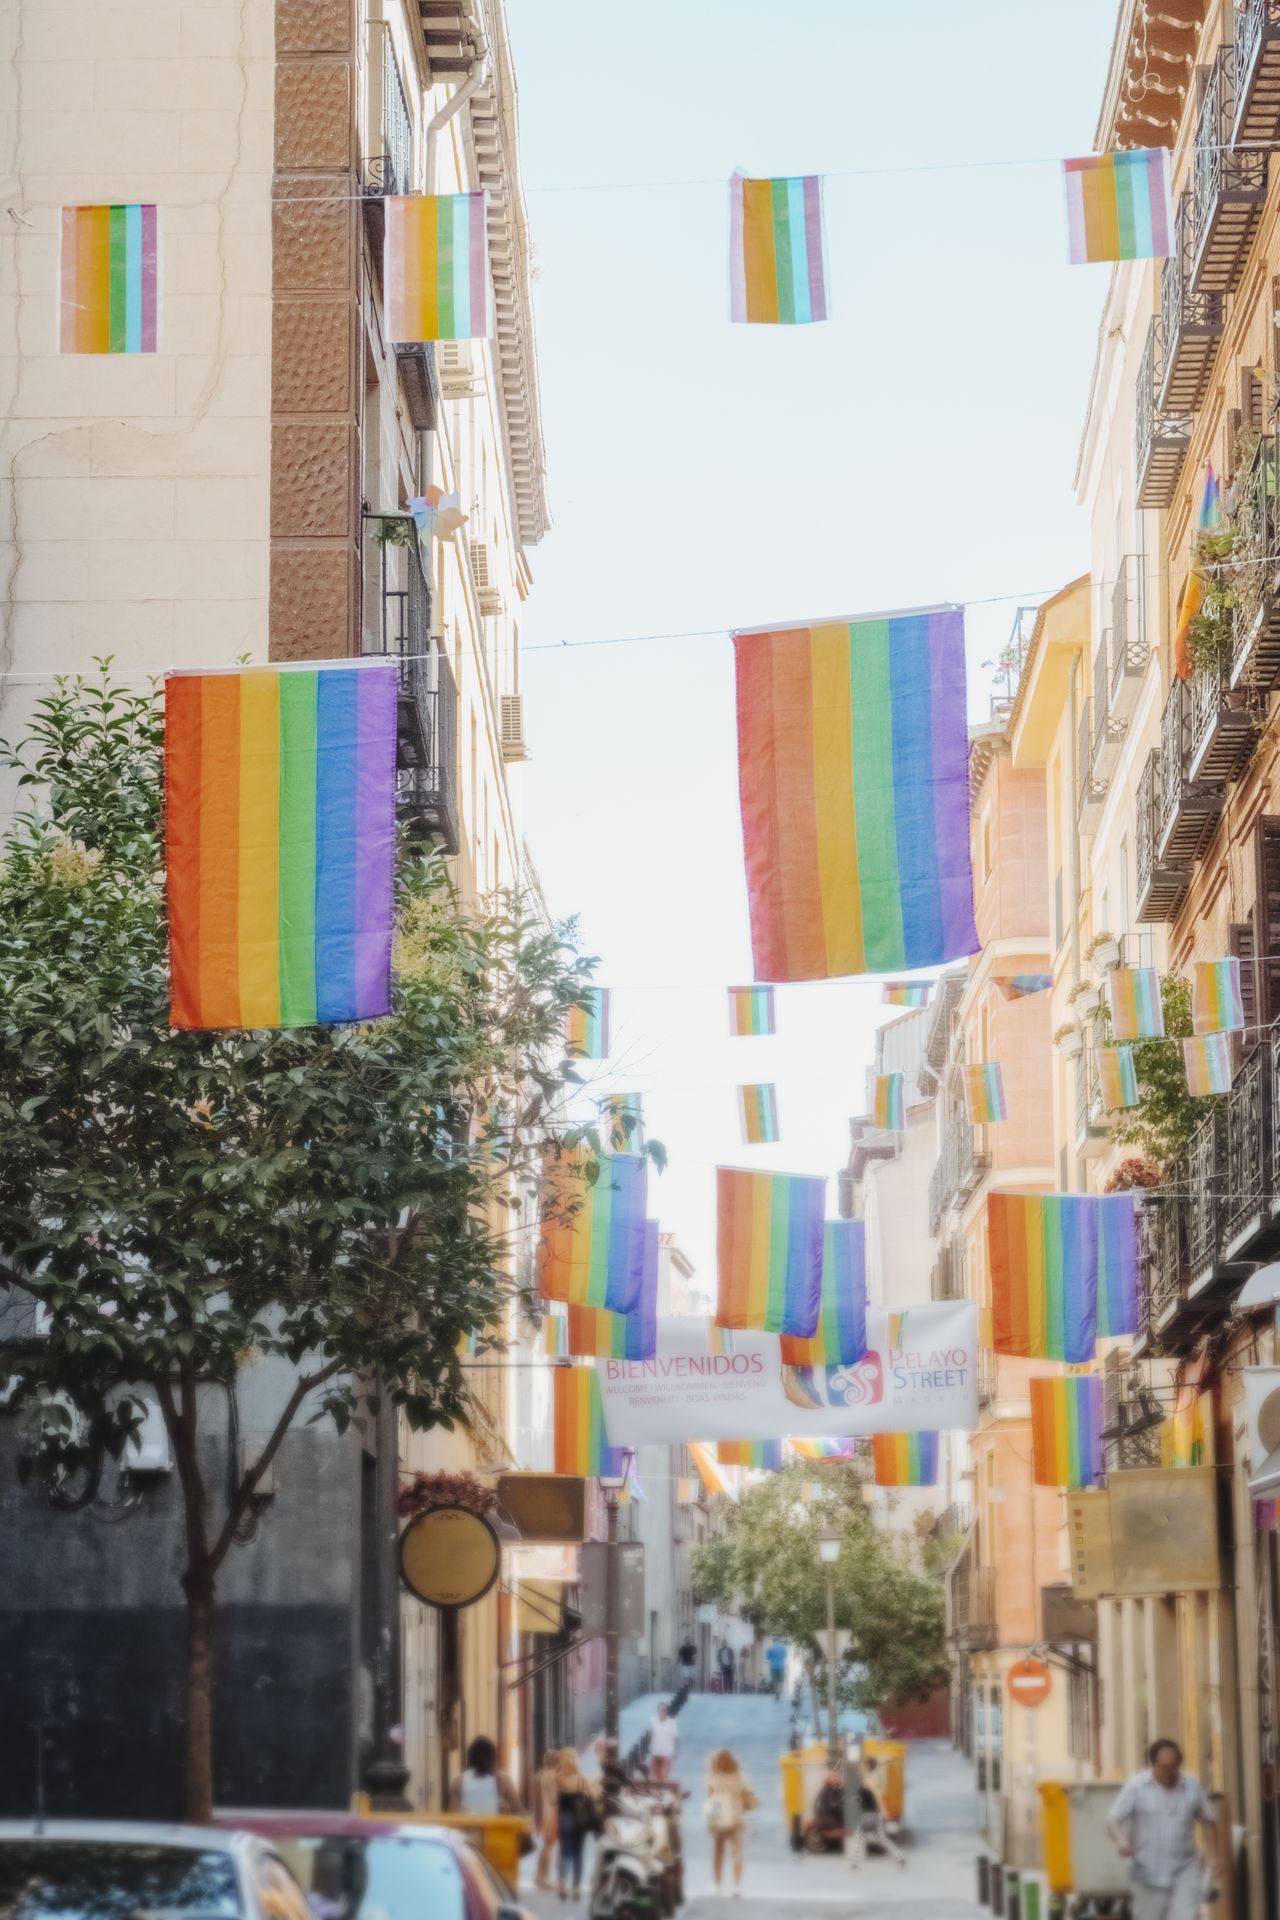 Architecture Building Exterior Built Structure Chueca City City Location Day Flag Flags Gay Pride Hanging Land Vehicle Madrid Spain Multi Colored Multicolored Flags No People Outdoors Pride Pride Parade Rainbow Flag Sky Street Street Photography Tree